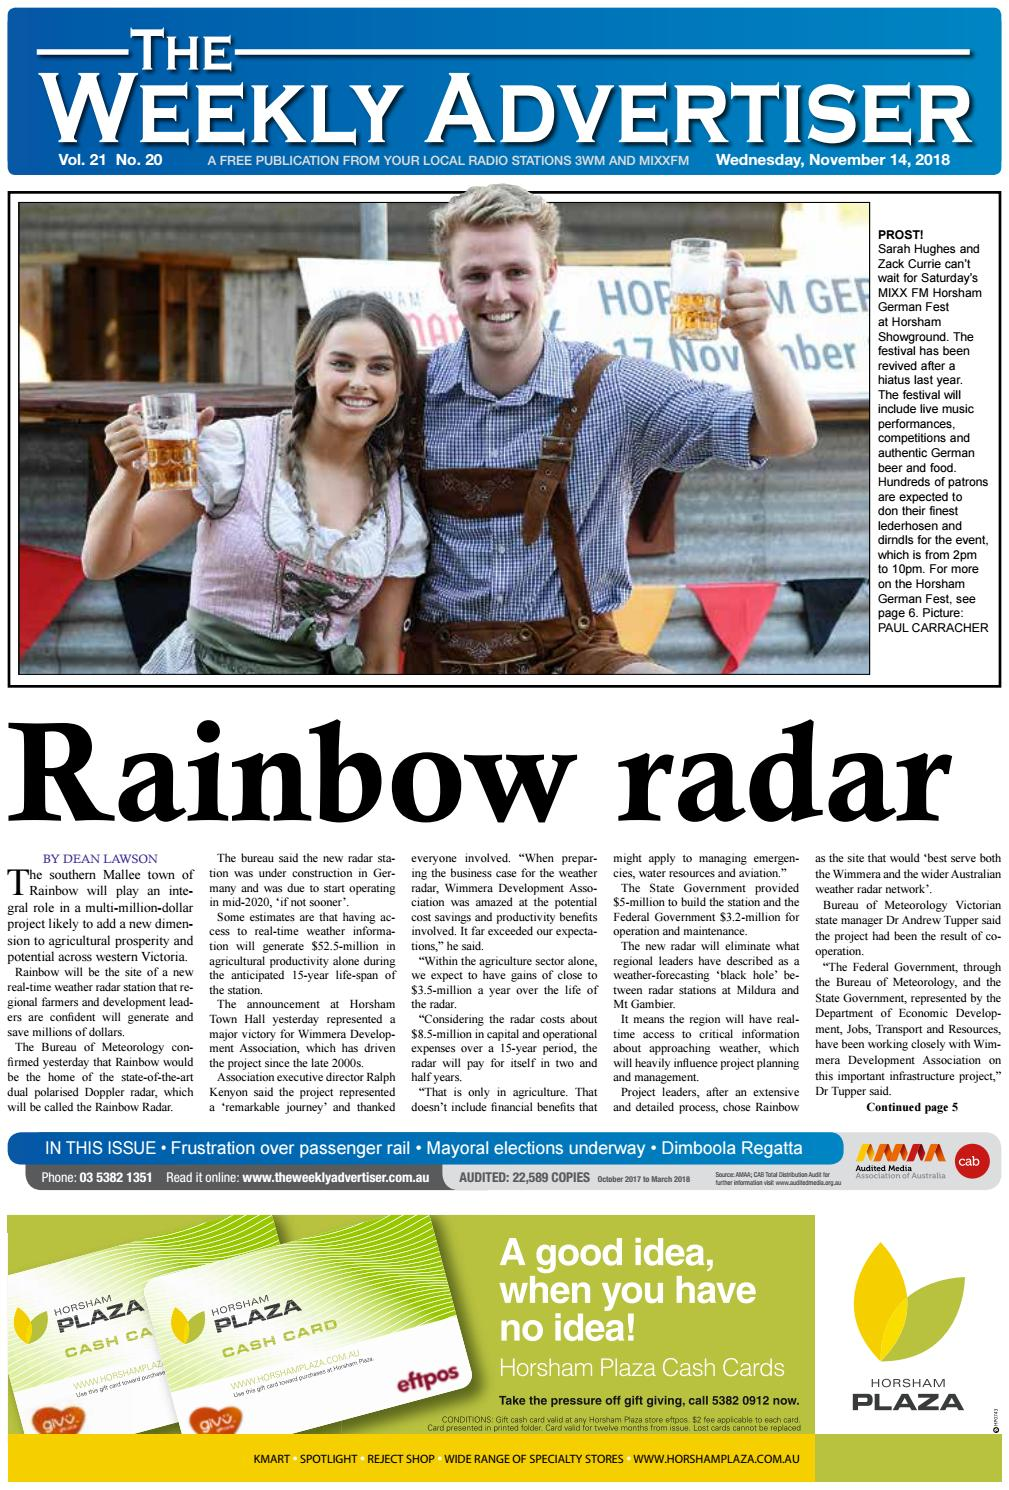 The Weekly Advertiser - Wednesday, November 14, 2018 by The